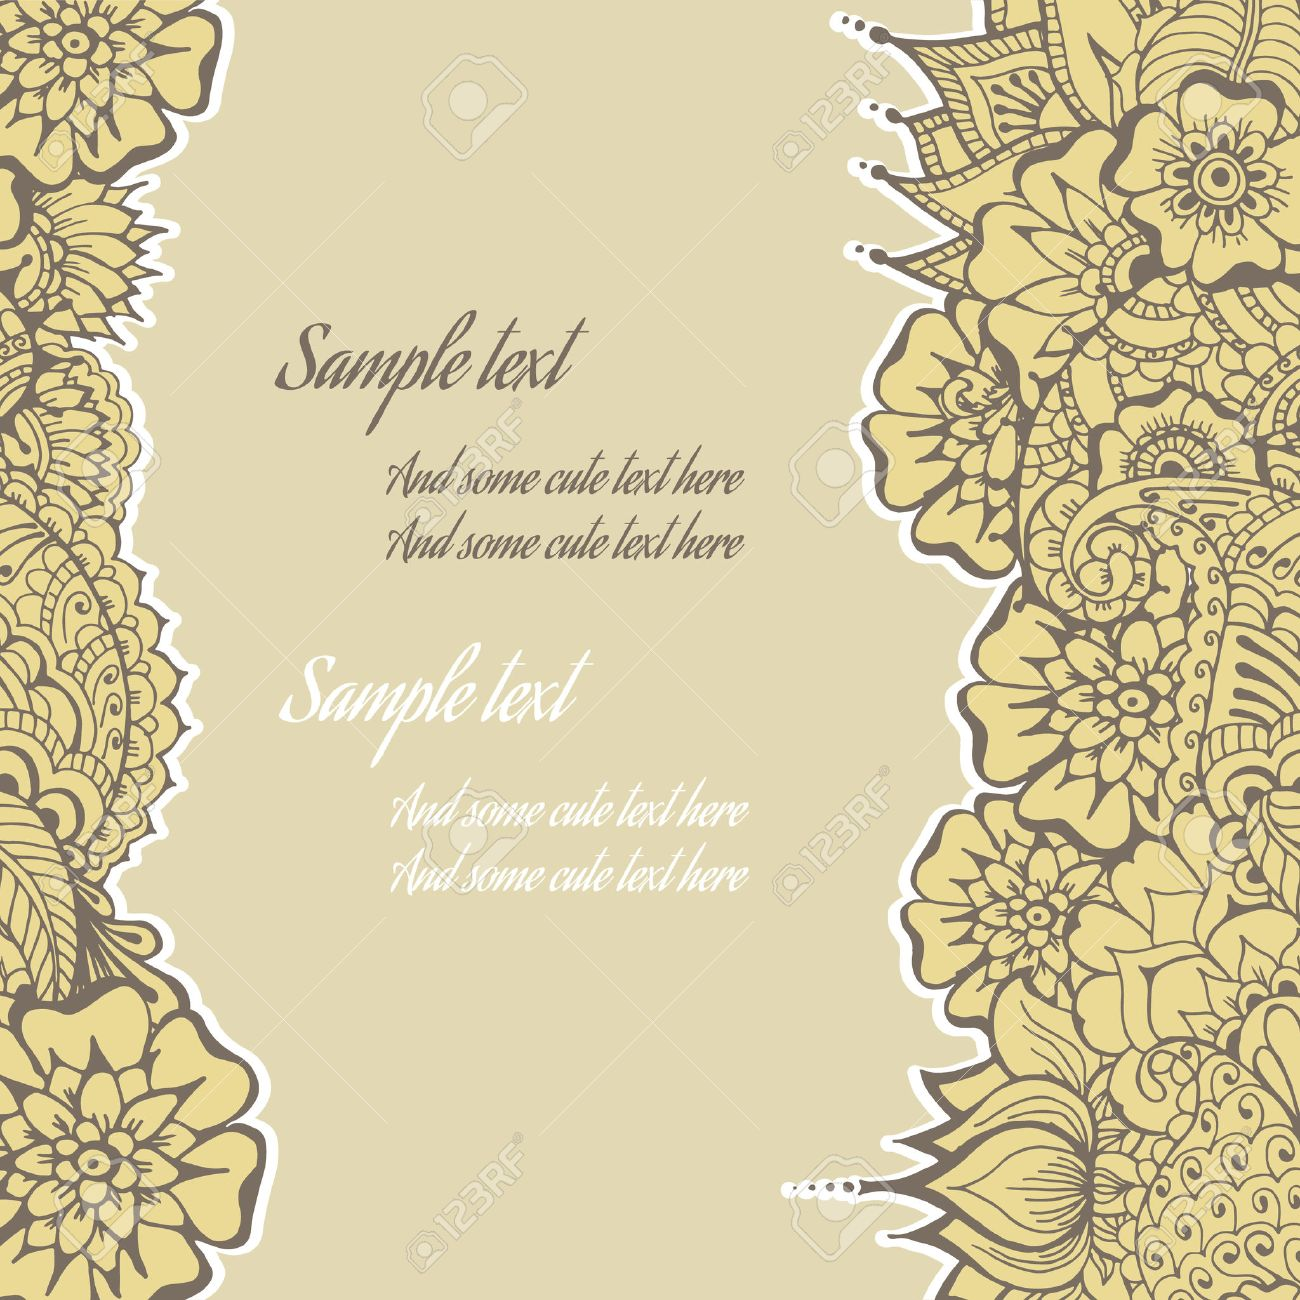 Ornate vintage vector background in mehndi style royalty free stock - Ornate Vector Card Template In Indian Mehndi Style Hand Drawn Abstract Background Invitation